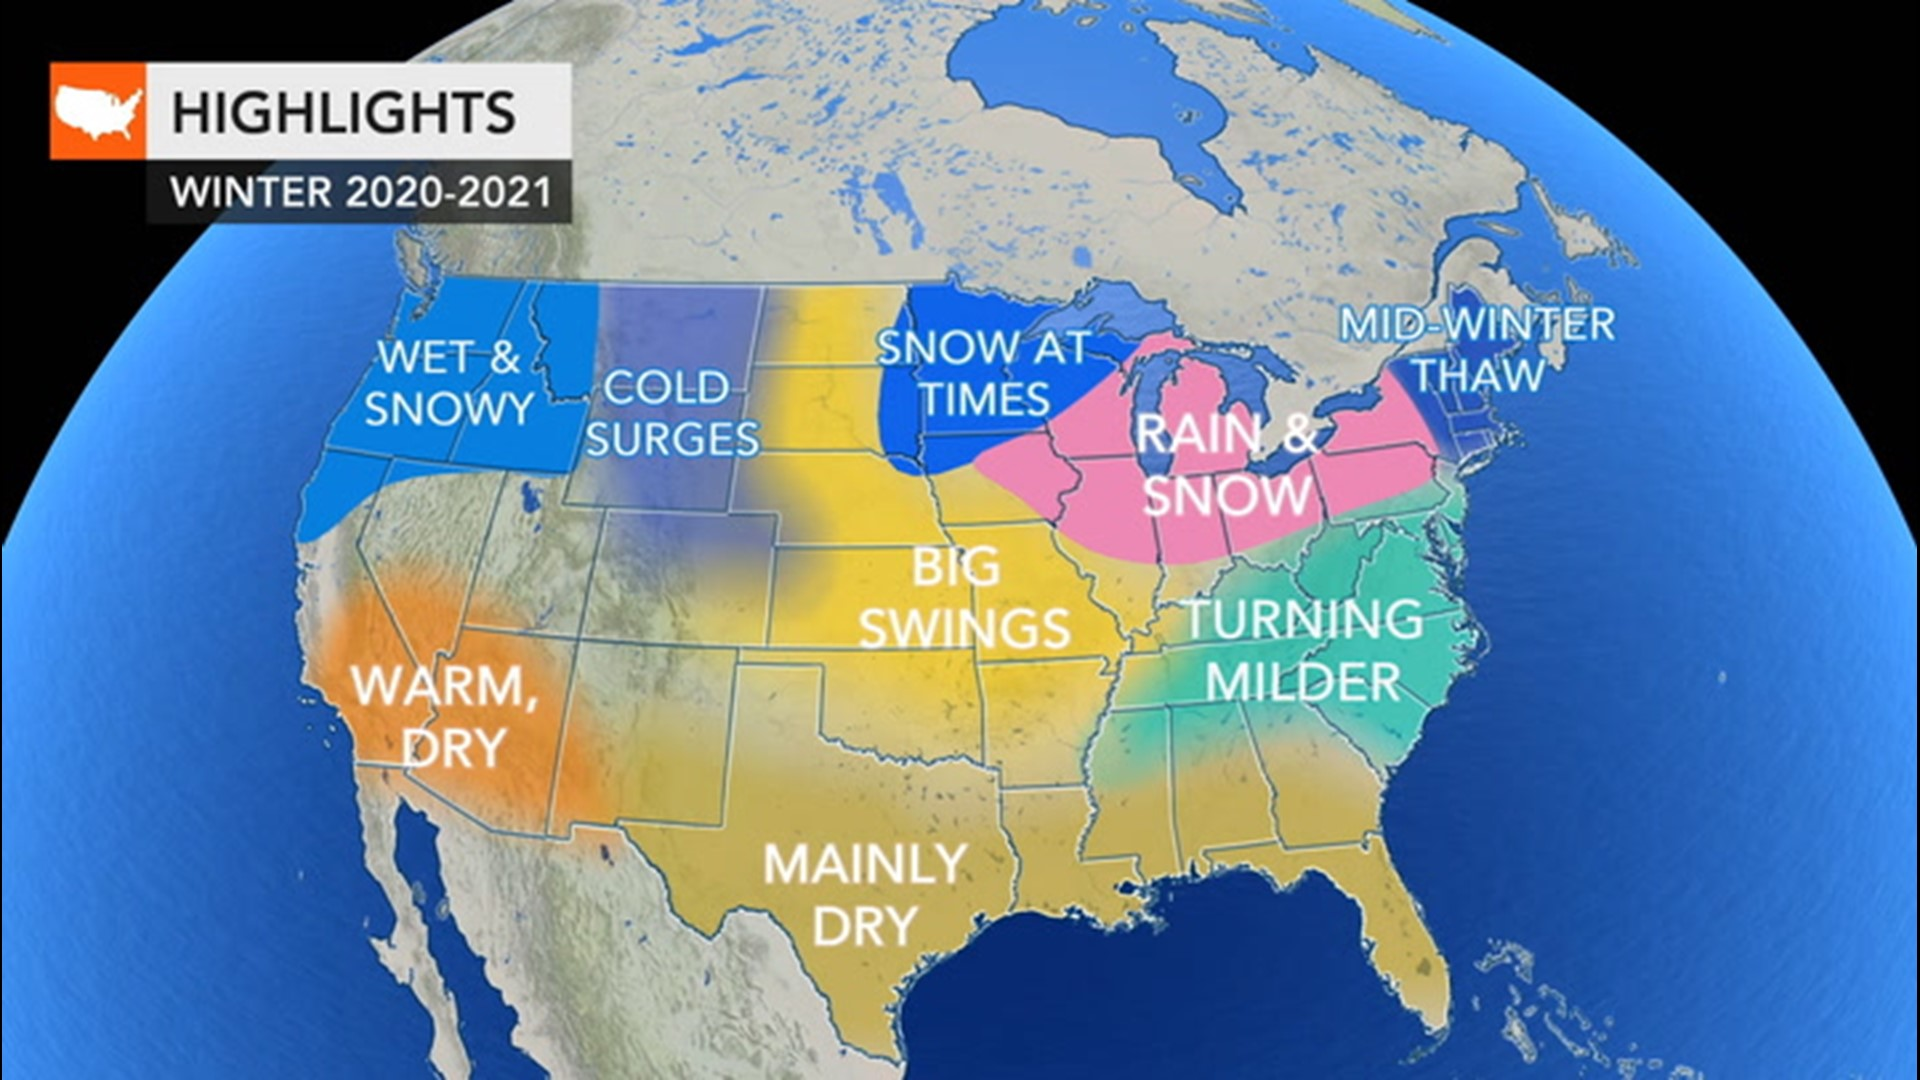 Christmas Forecast 2020 For New Orleans Winter is coming; here's the winter weather forecast for around